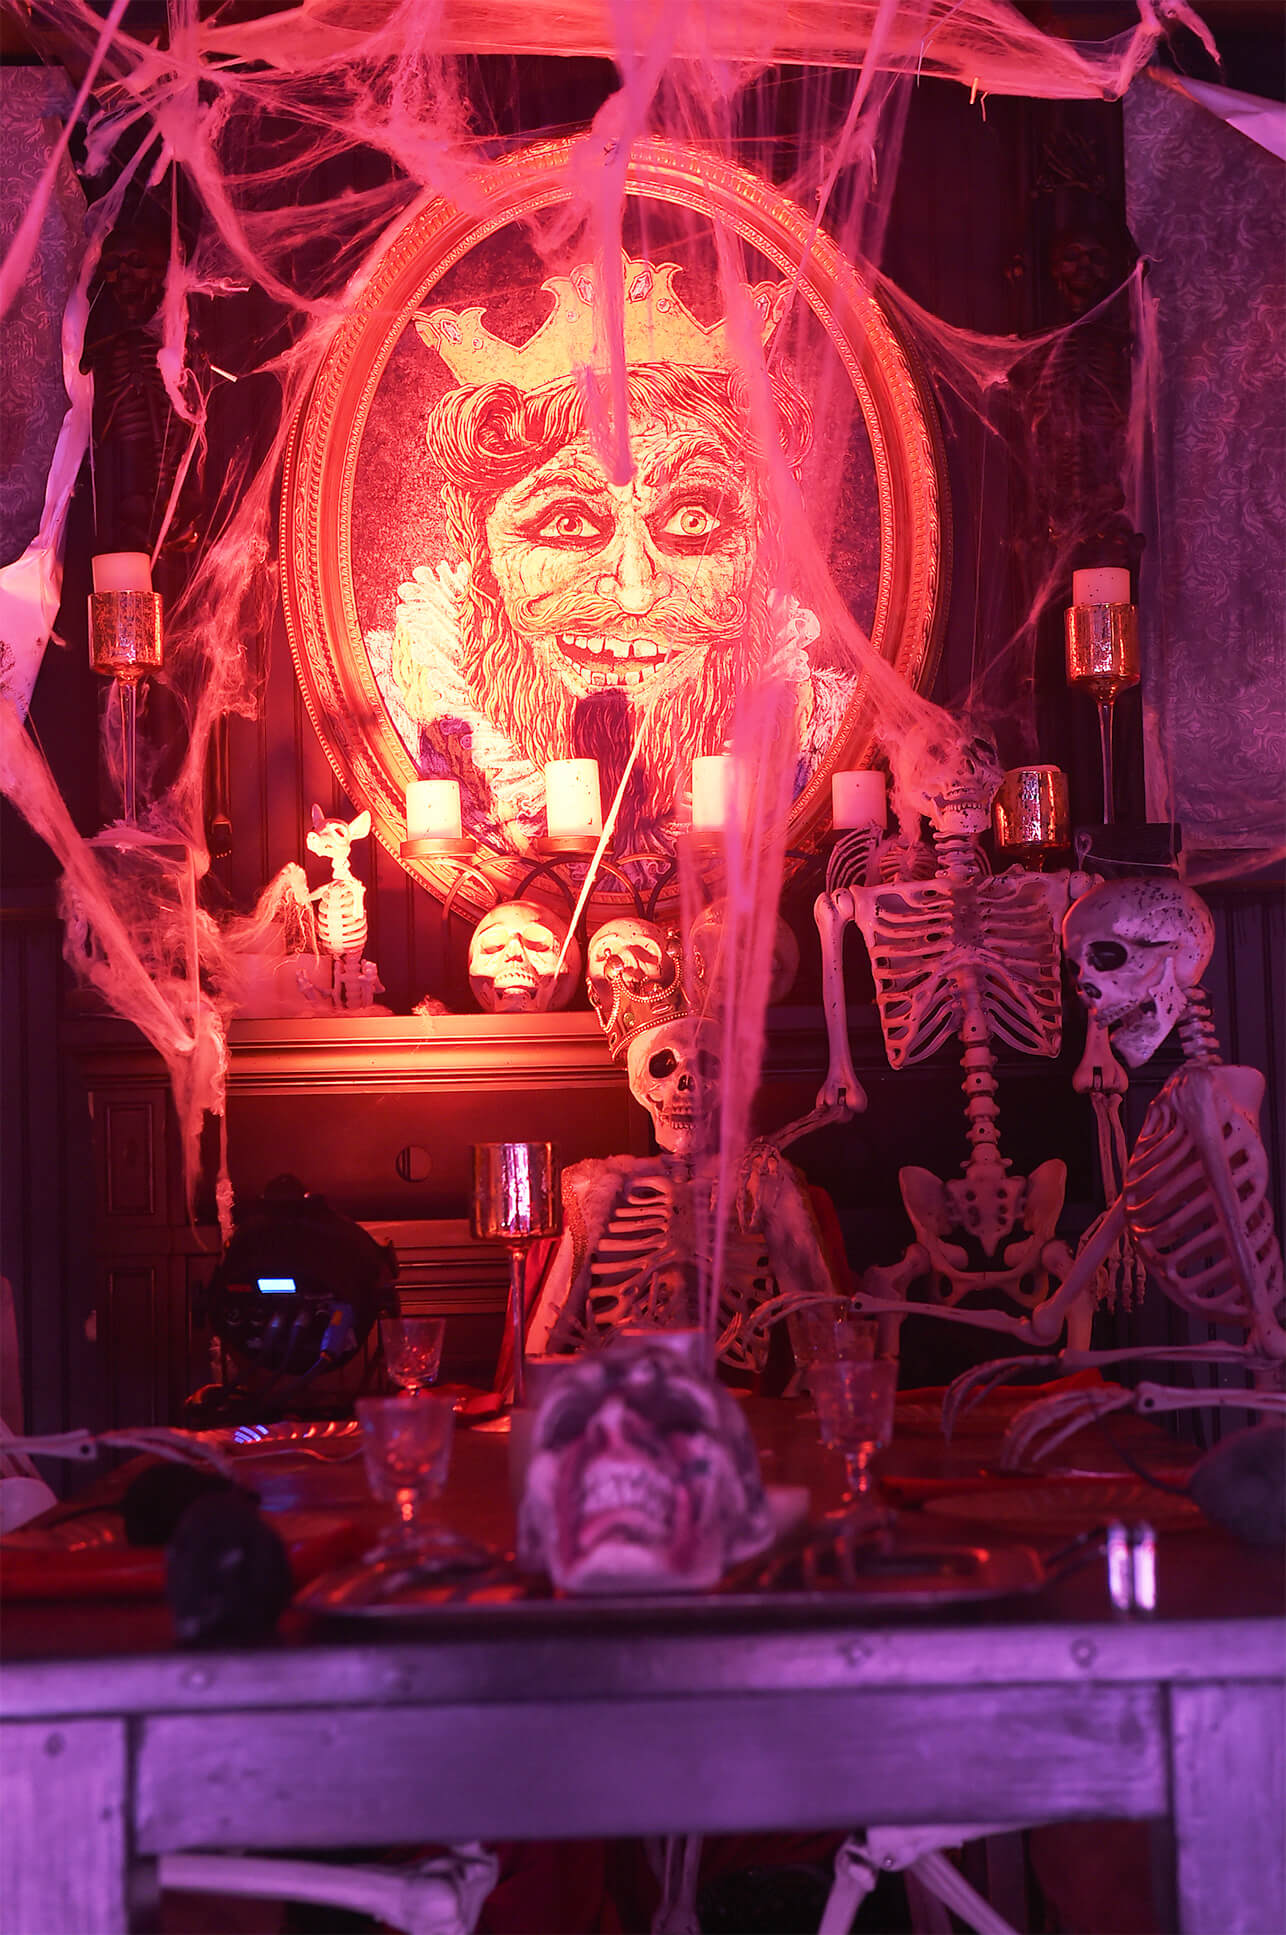 Complete with a ghoulish light package, sound effects, and smoke machines, drivers navigated through vignettes and live action scenes created by experiential marketing agency, TMA.